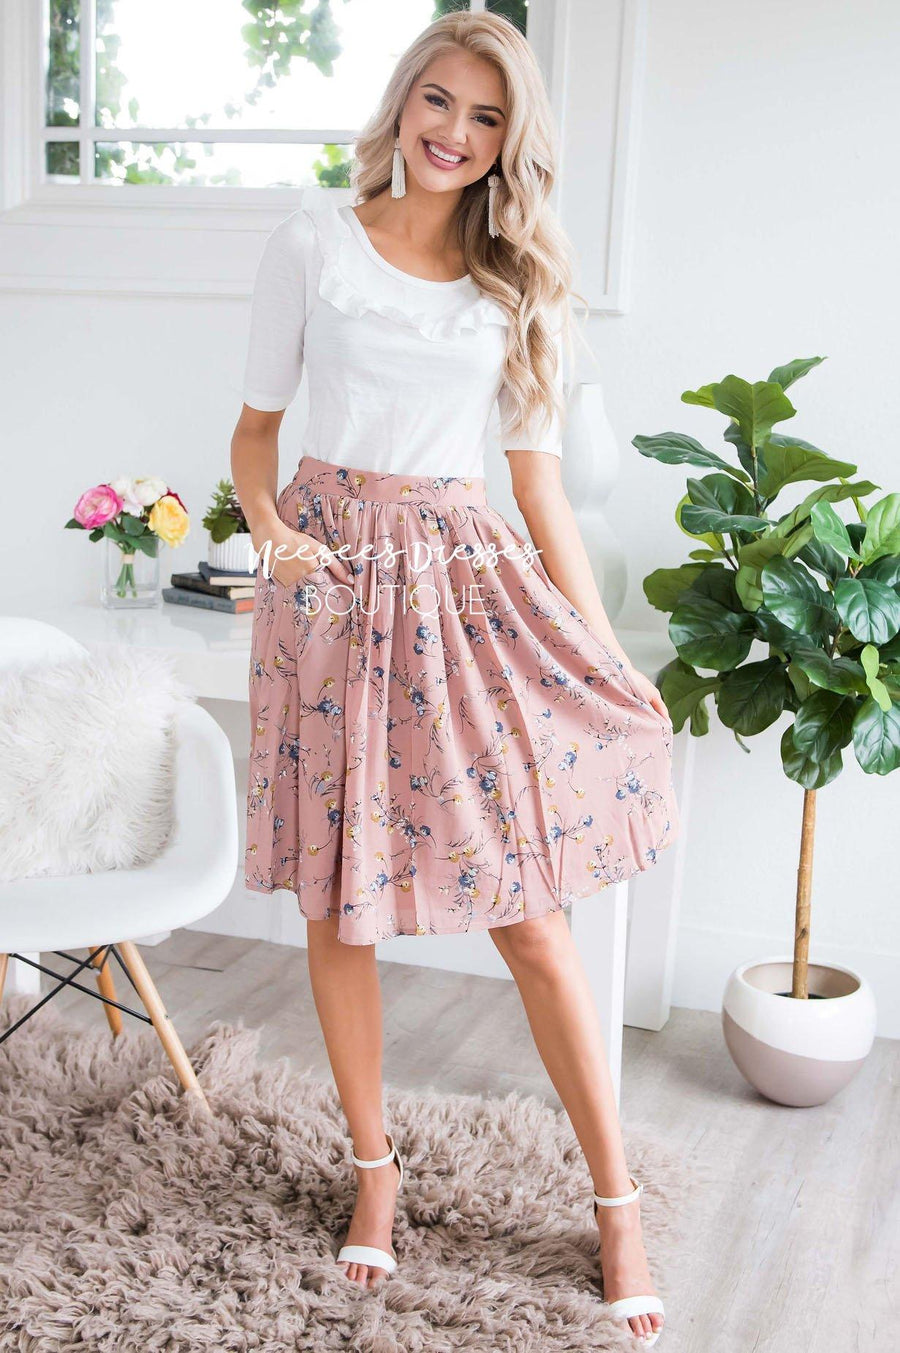 Dusty Pink & Powder Blue Floral Chiffon Skirt